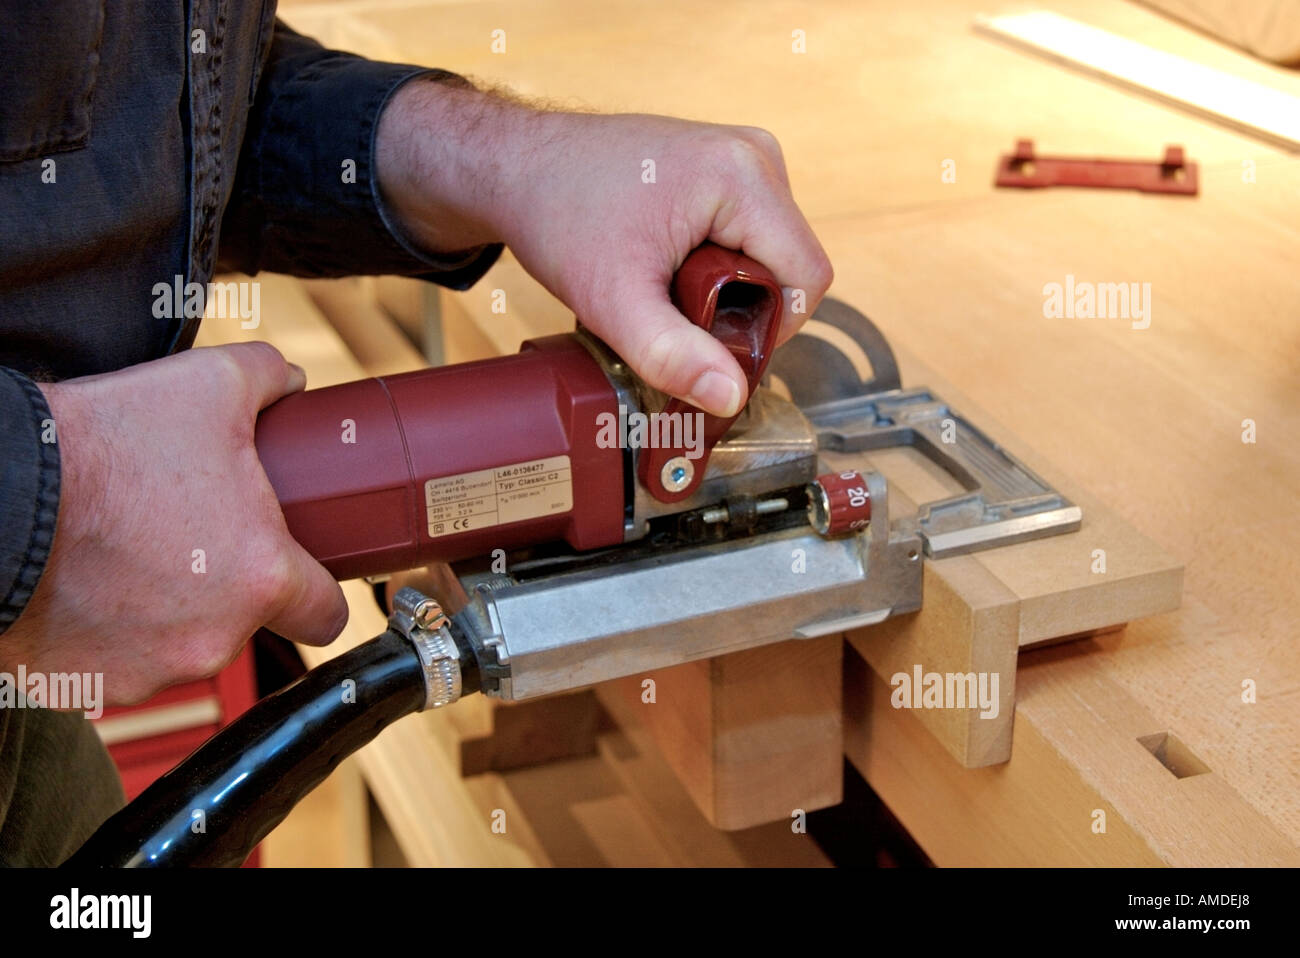 Close Up Of Craftsman In Woodworking Shop Using An Industrial